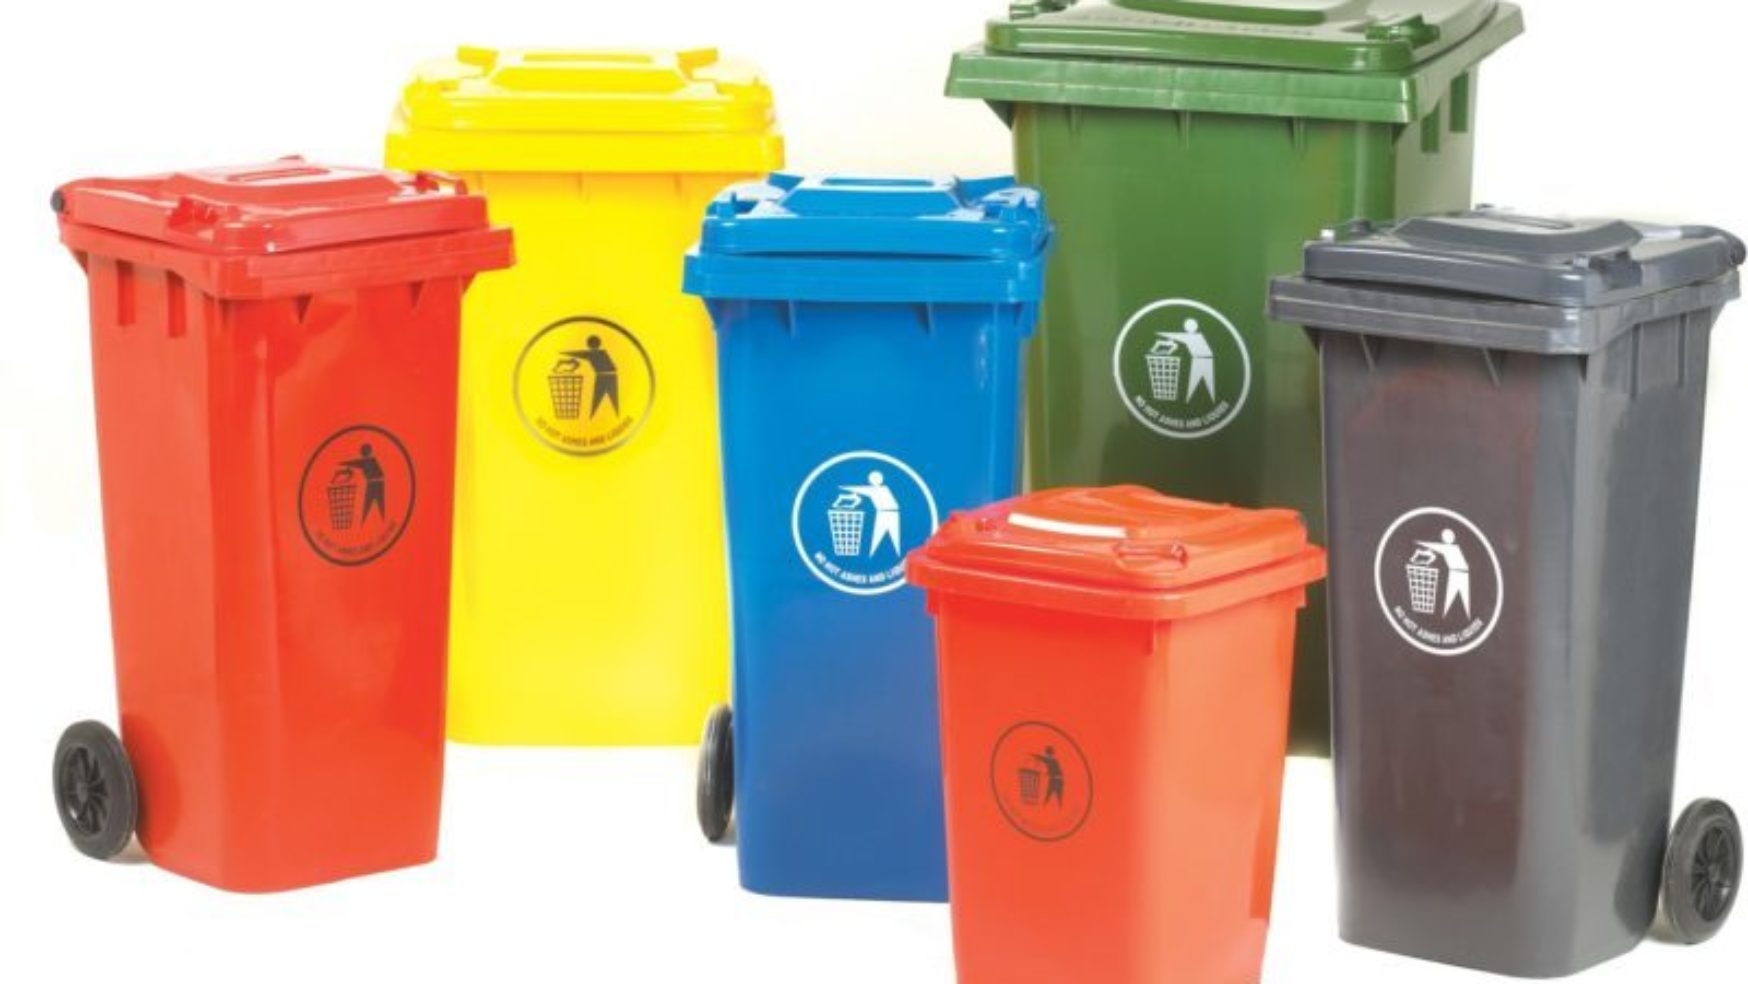 NEW CHARGES FOR REPLACEMENT BINS